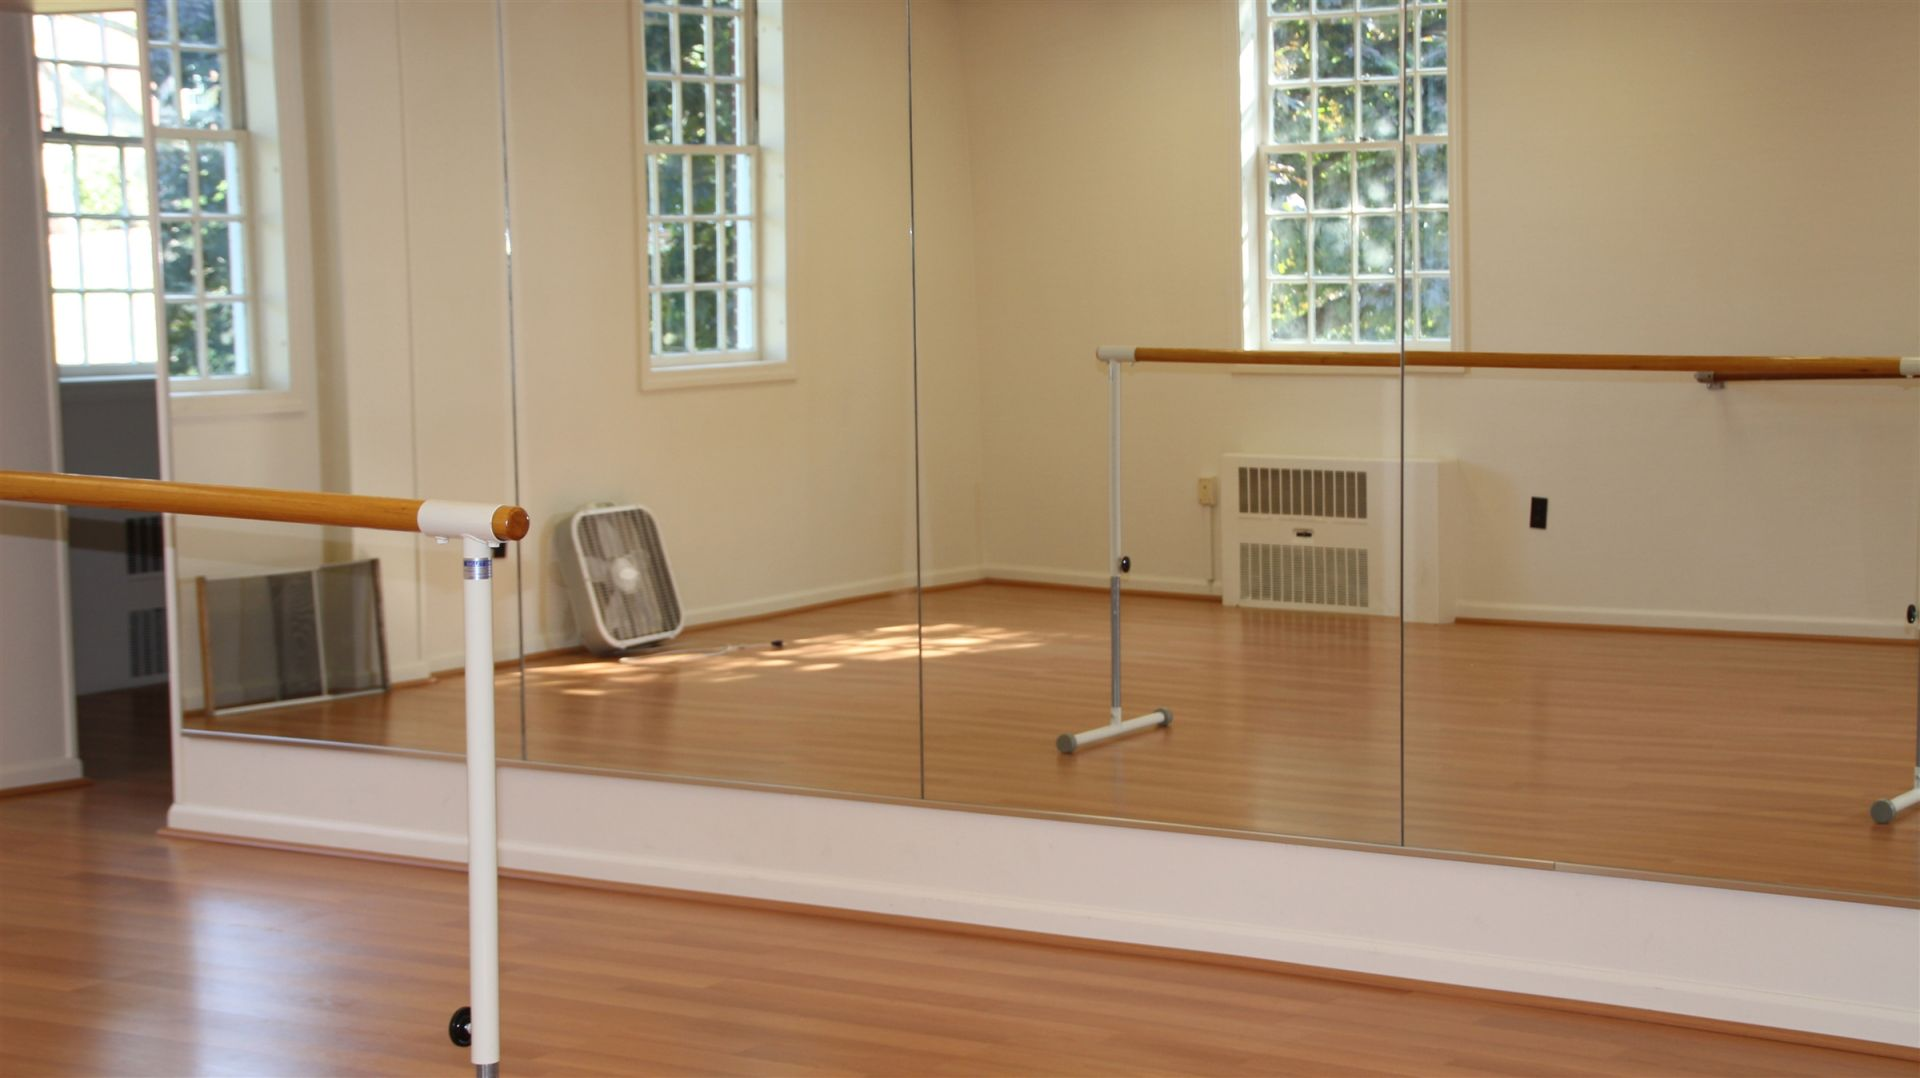 In a fully mirrored room complete with ballet bars, an experienced instructor will work with students on form, lines, and rhythm to create measured routines. This spacious area is a dedicated space for dancers to practice and perform their work in a collaborative setting.